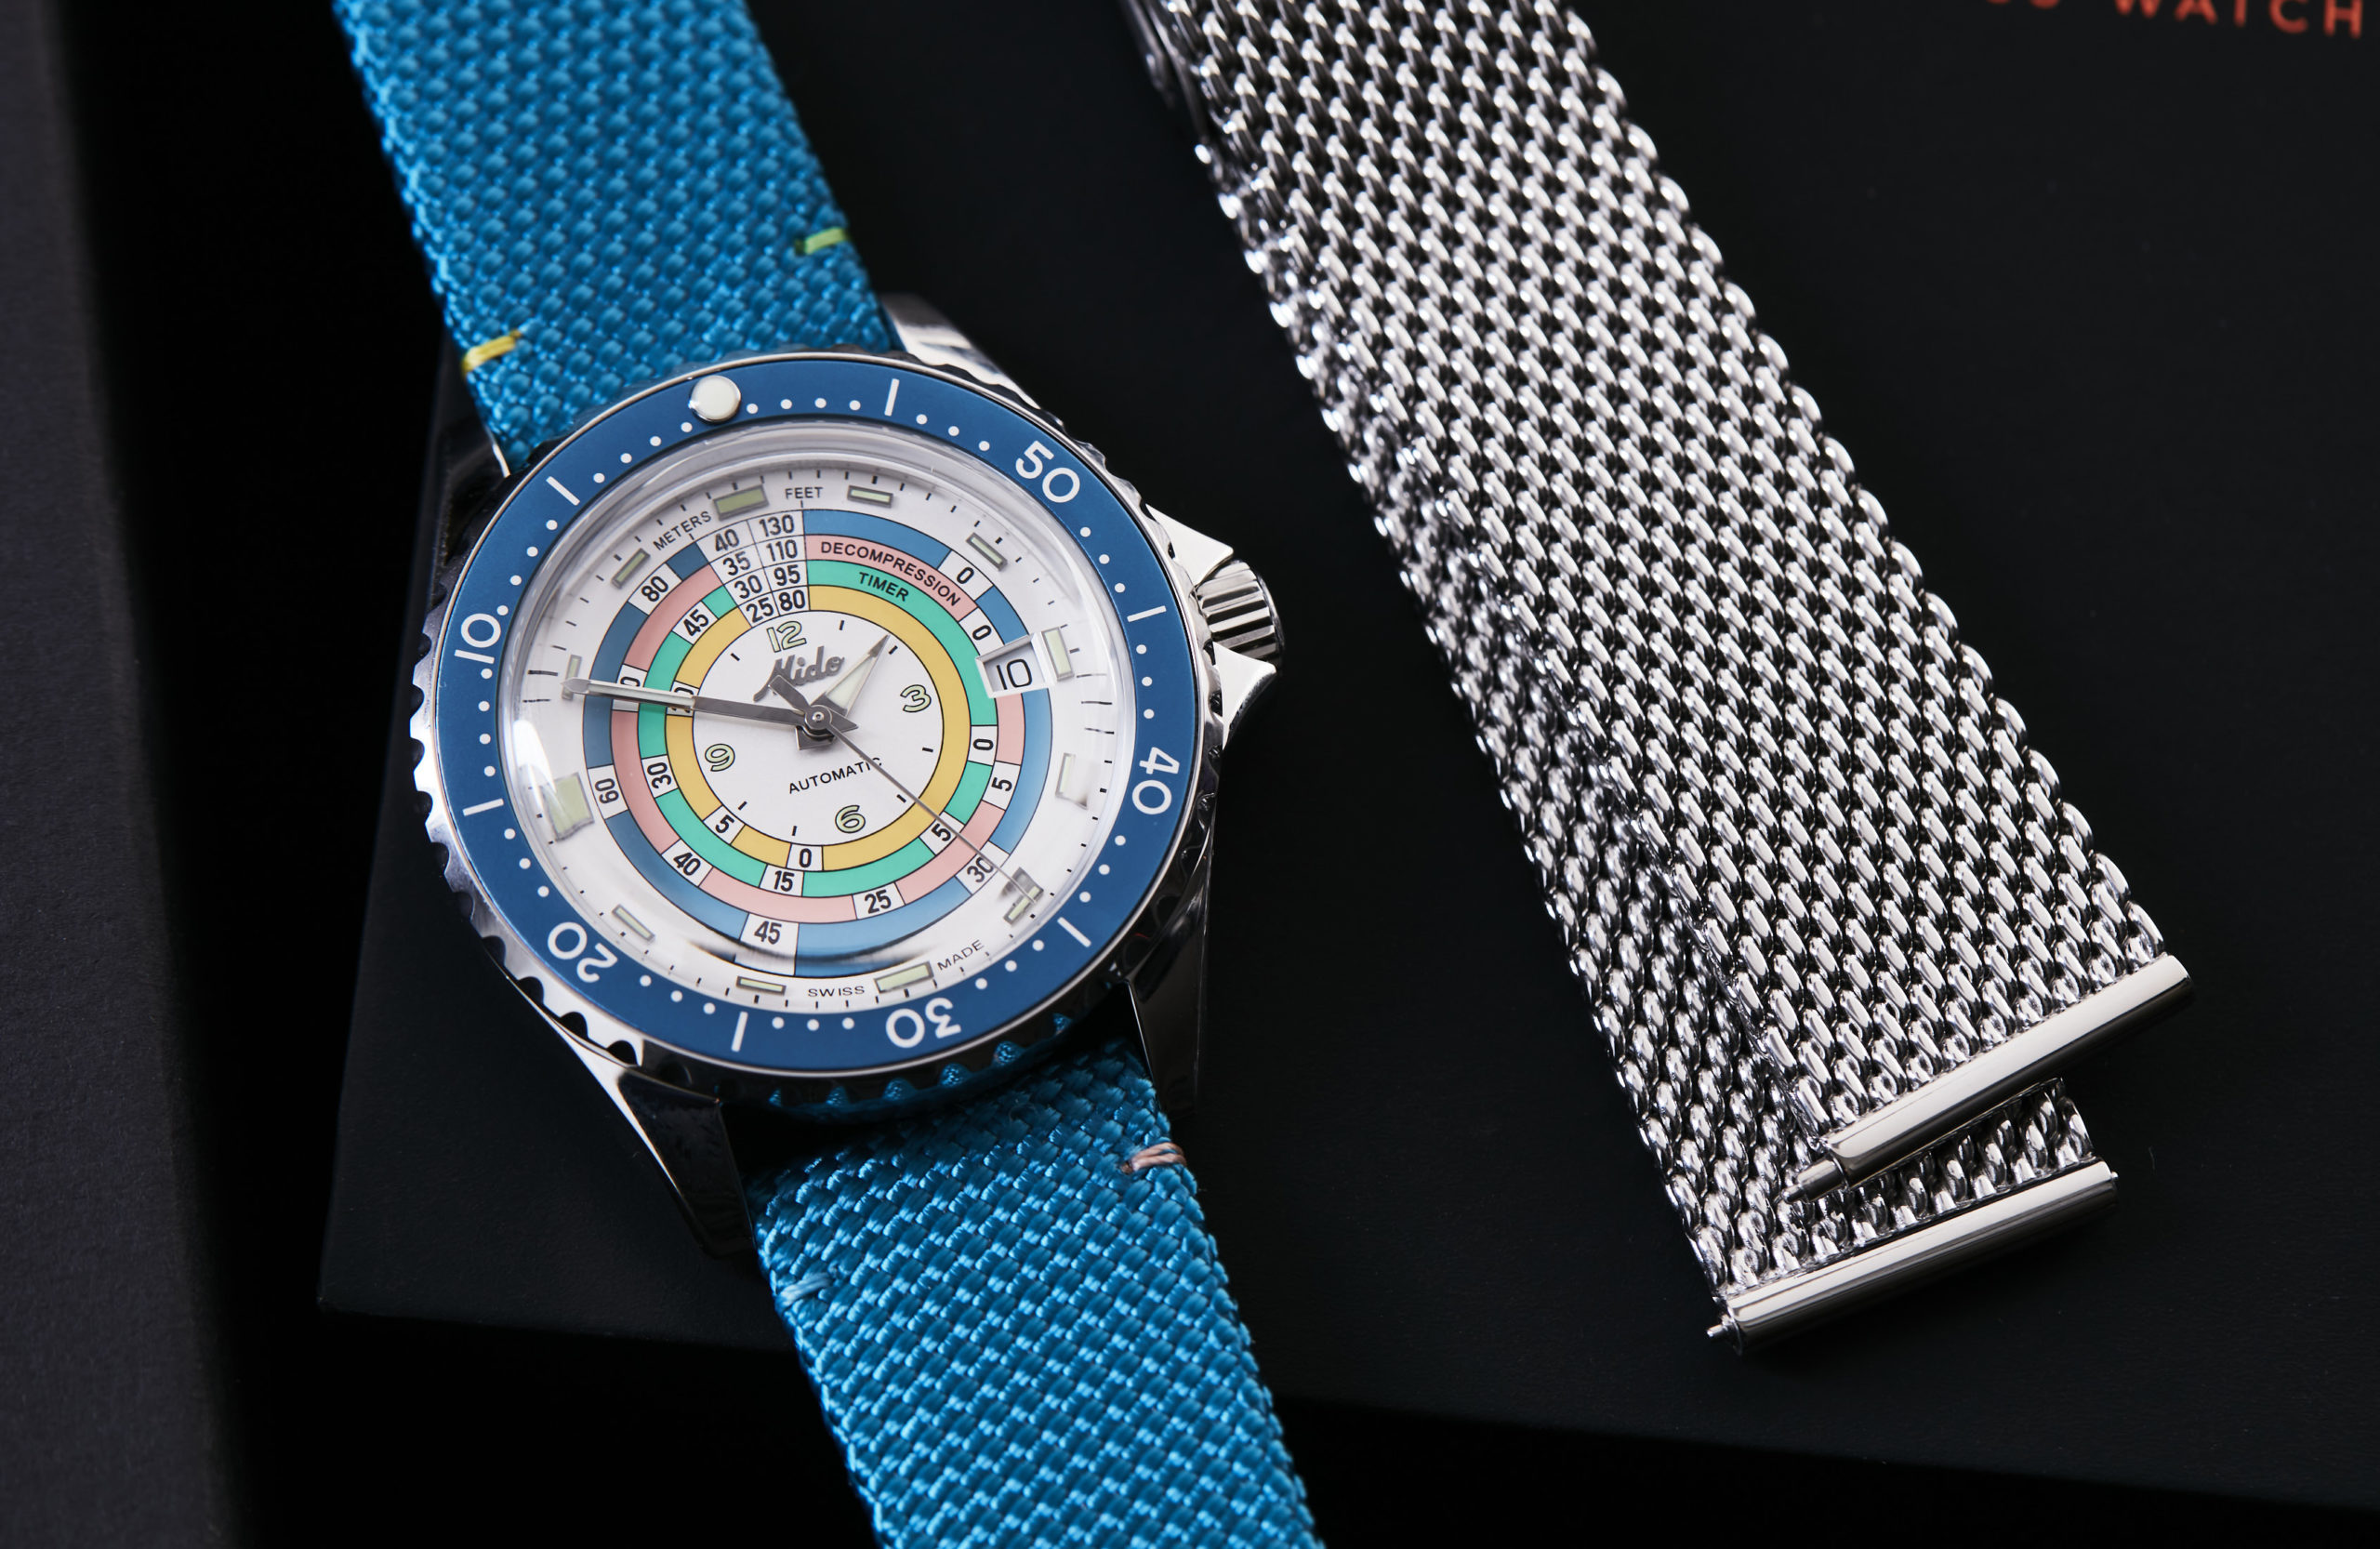 VIDEO: The Mido Decompression Timer 1961 Limited Edition with a fresh silver dial and turquoise bezel